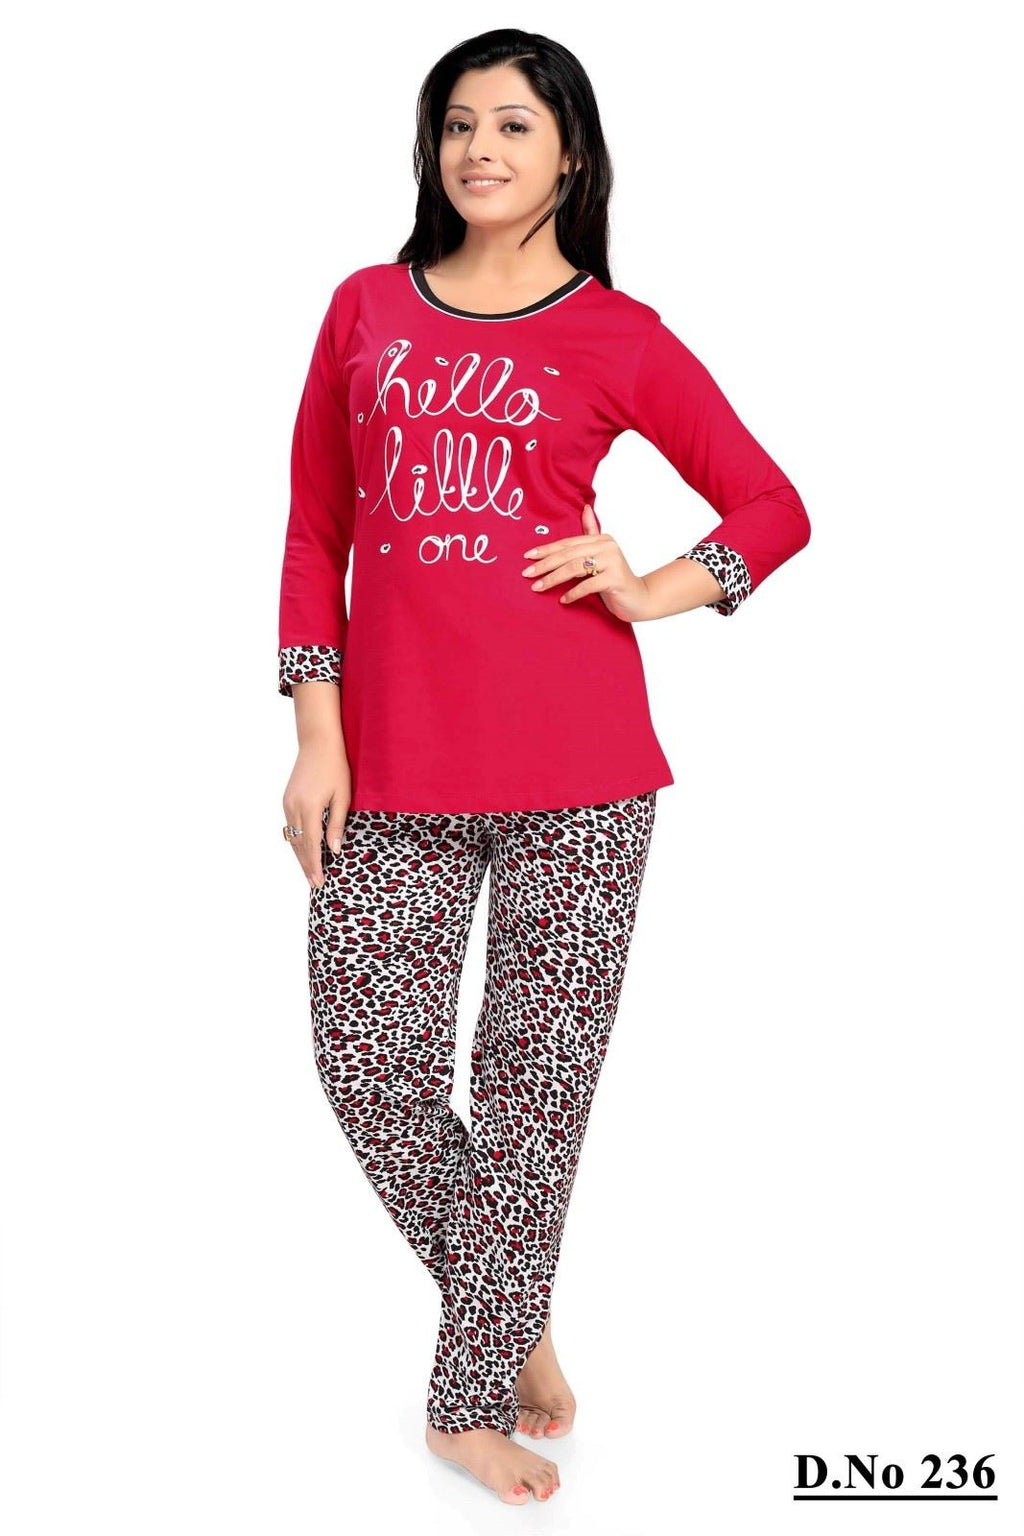 HELLO LITTLE ONE Pyjamas Set PJS [colour]- Hautie UK, #Nightfashion | #Underfashion